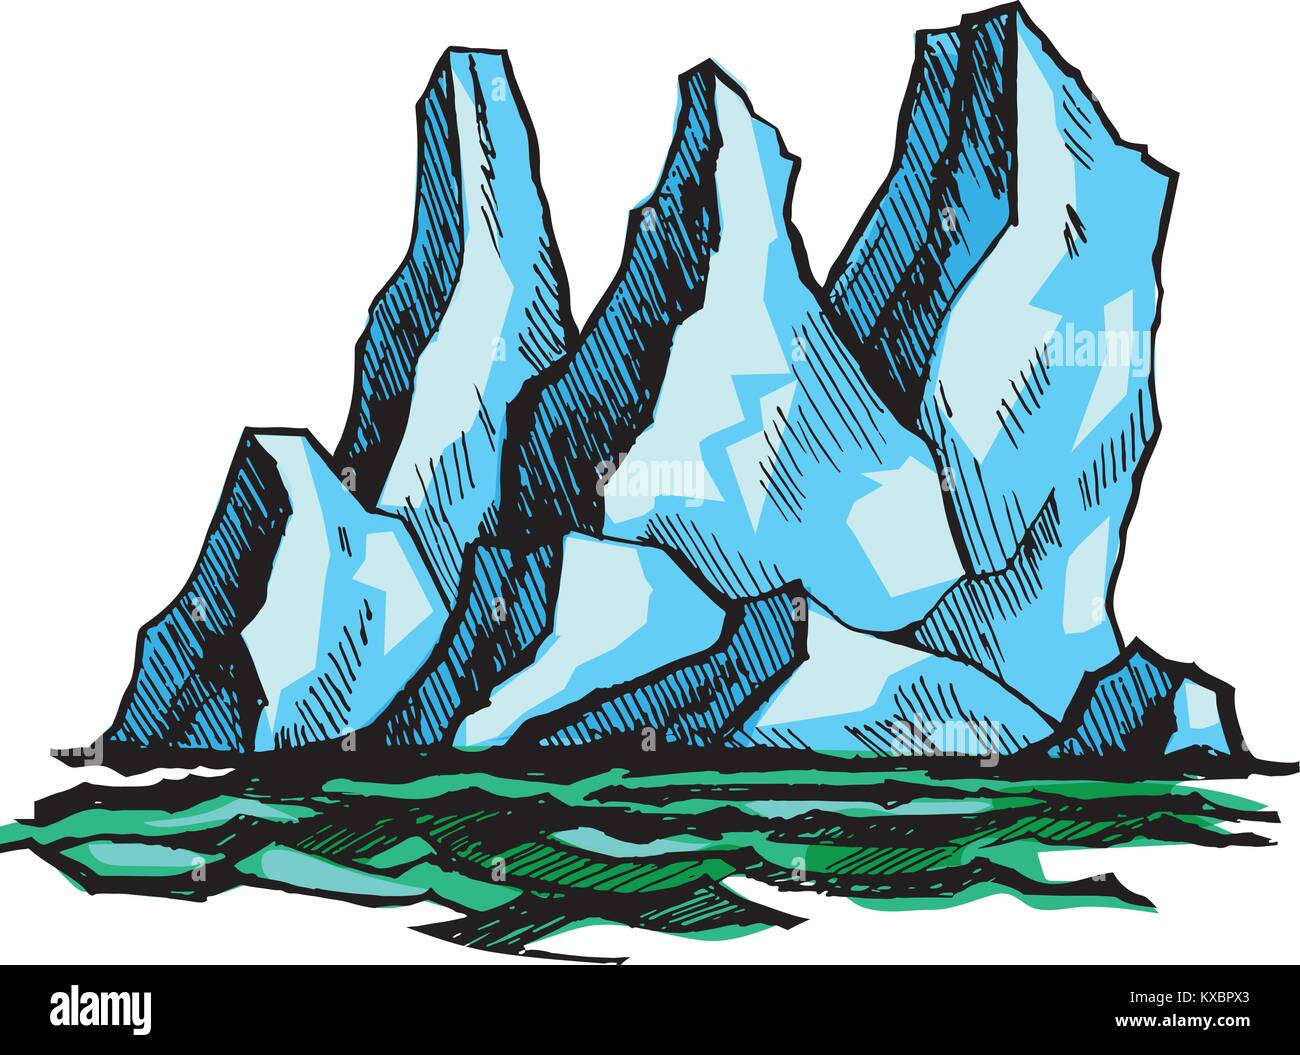 Iceberg above the water - Stock Vector